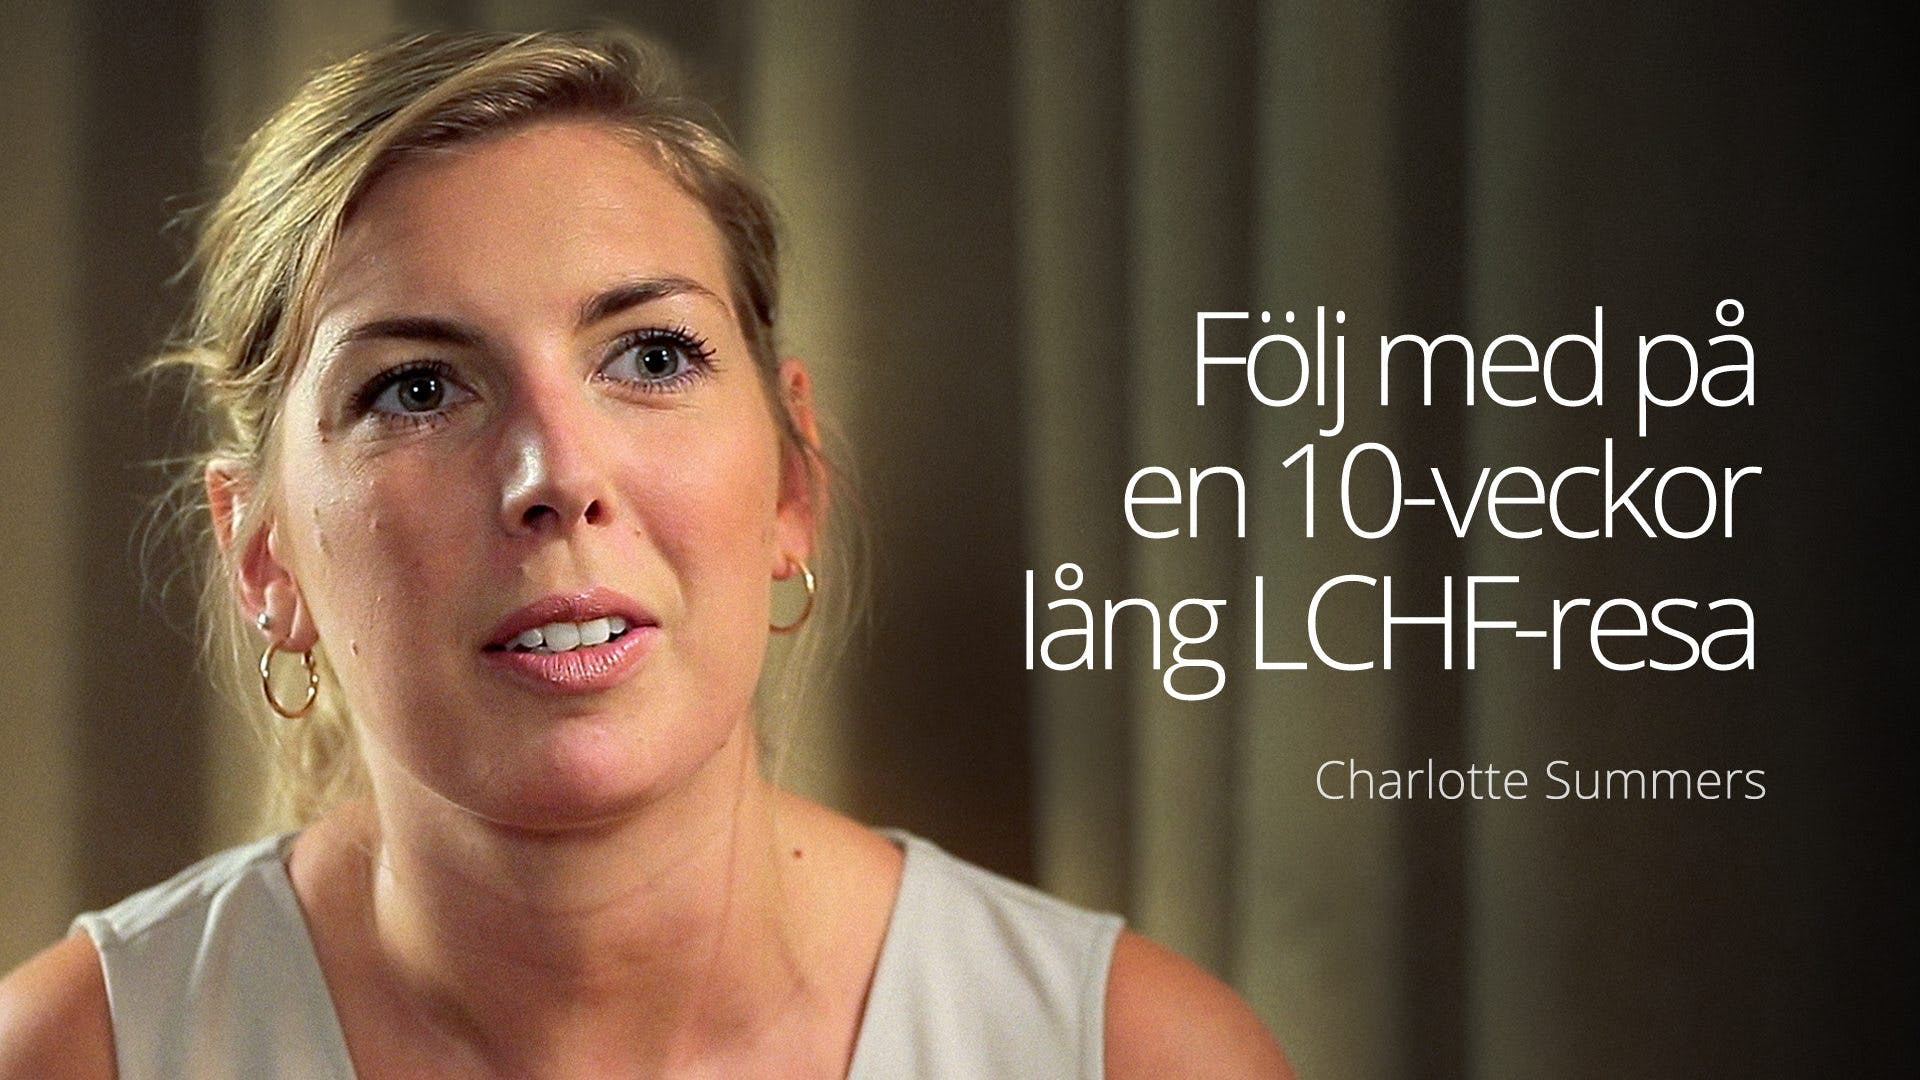 VIDEO: Charlotte Summers - Get on Board the 10-Week Low-Carb Journey (SD 2016)